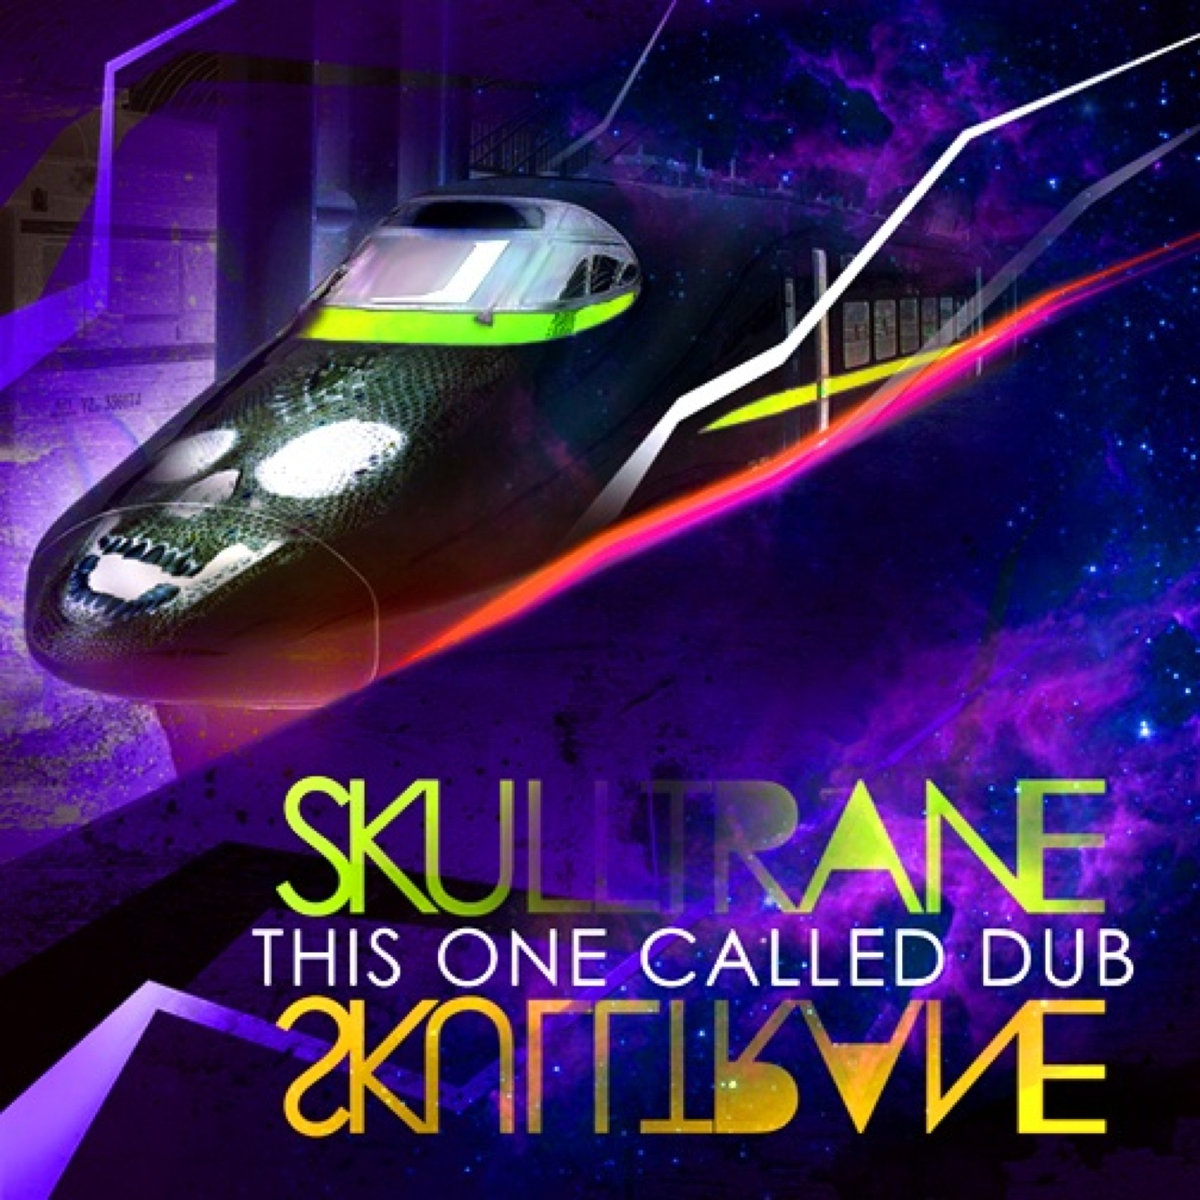 Skulltrane - Mission (Blackheart Remix) @ 'This One Called Dub' album (electronic, dubstep)